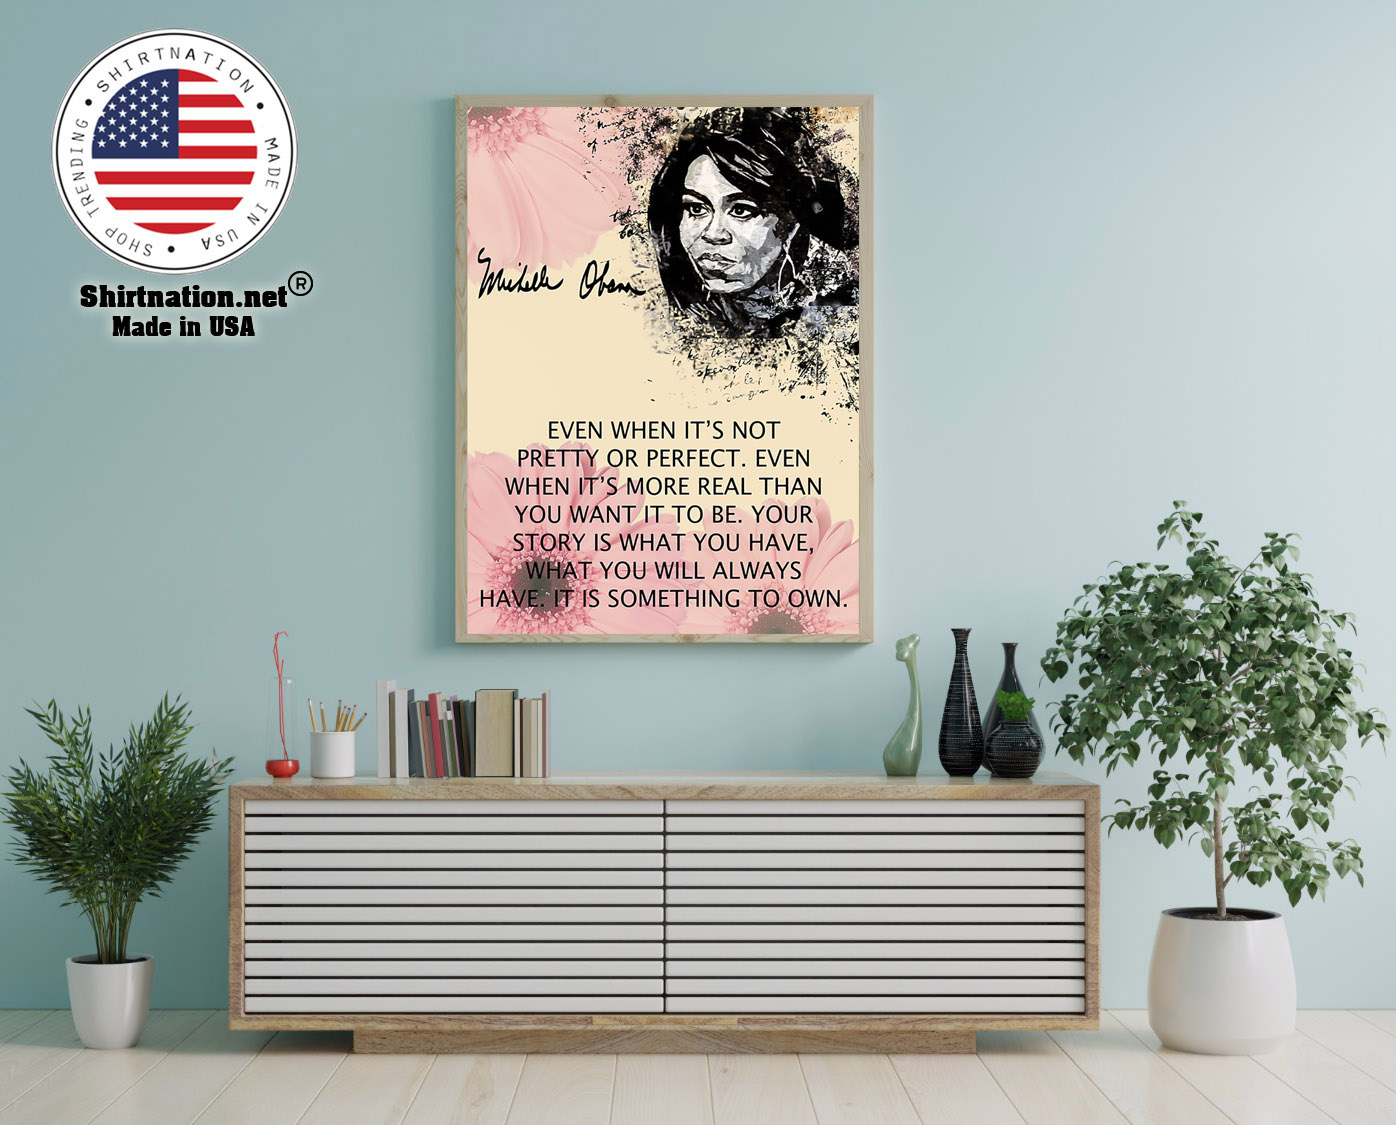 Michelle Obama even when its not pretty or perfect poster 12